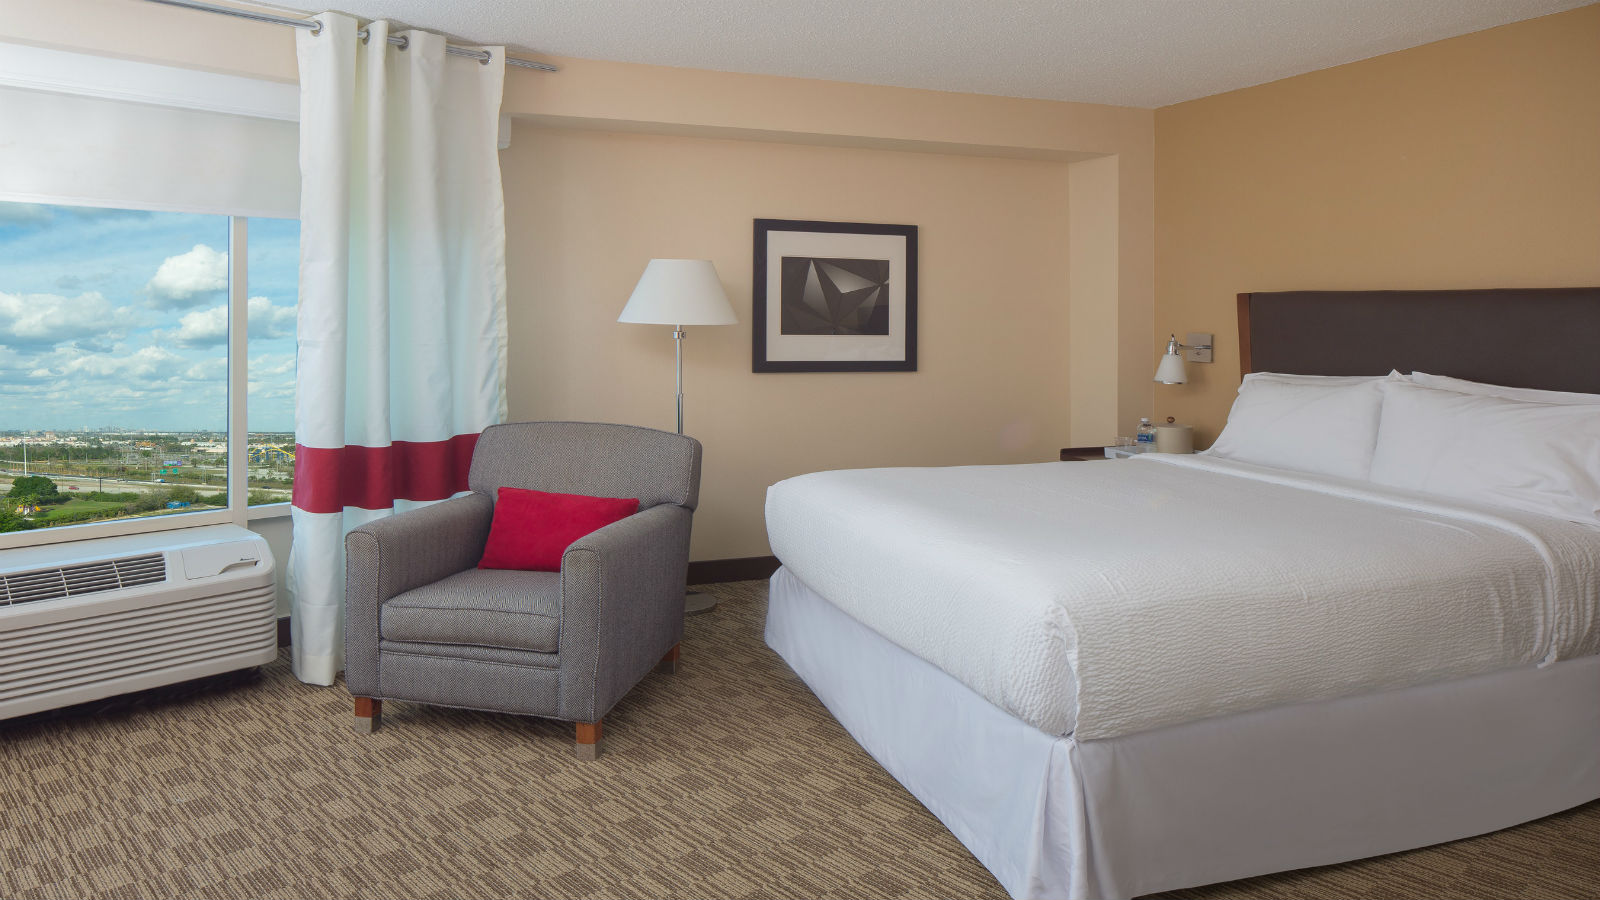 Orlando Accommodations - Accessible Room